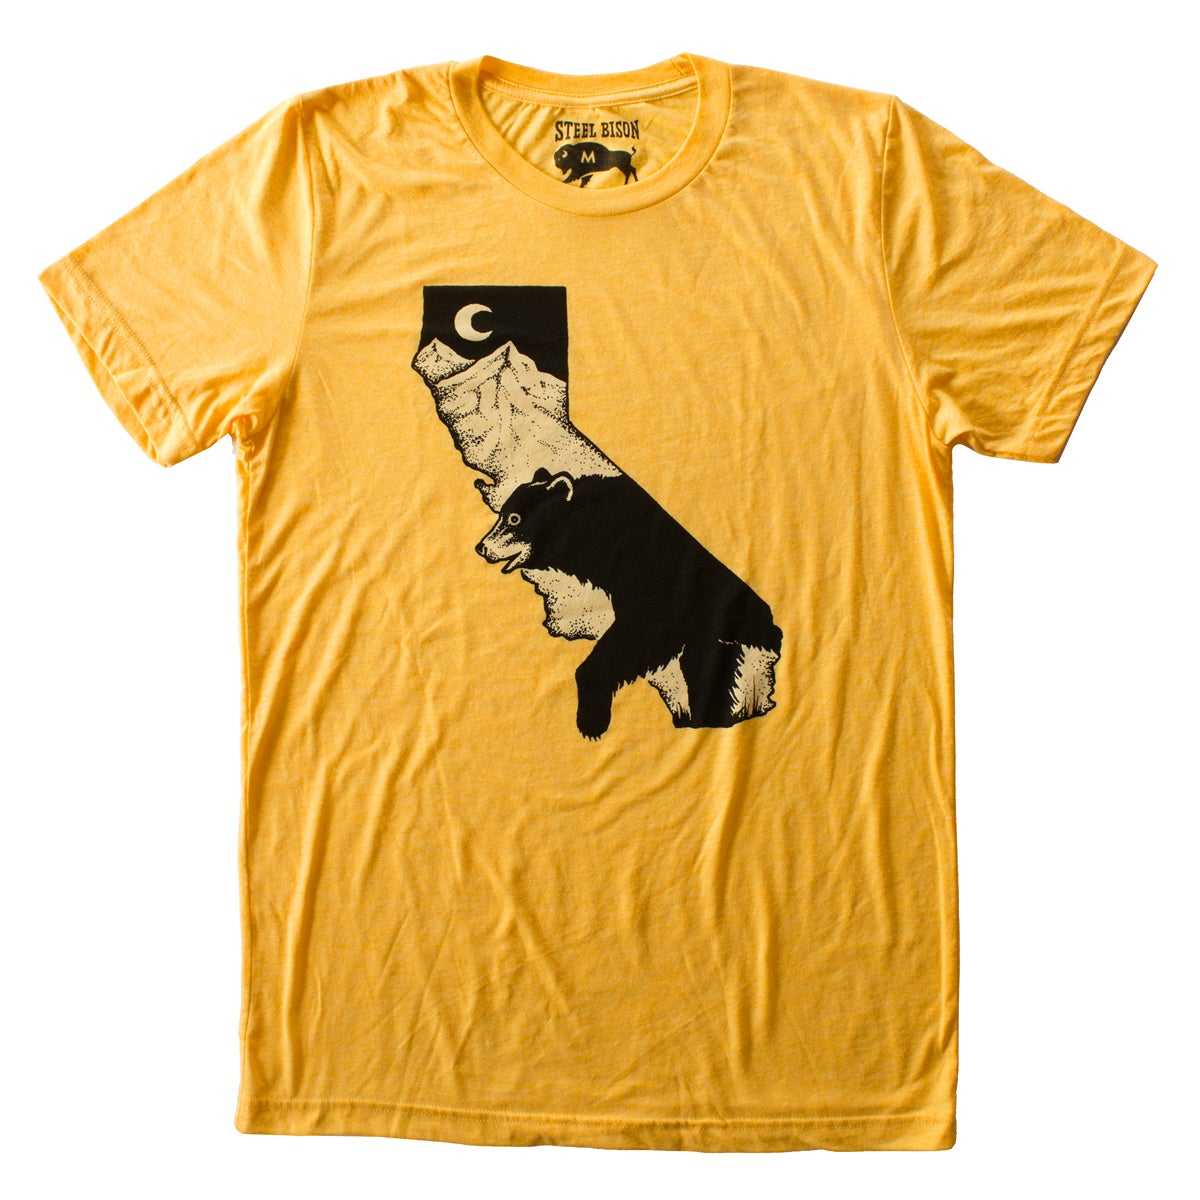 Image of T-SHIRT - CA BLACK BEAR (YELLOW GOLD)